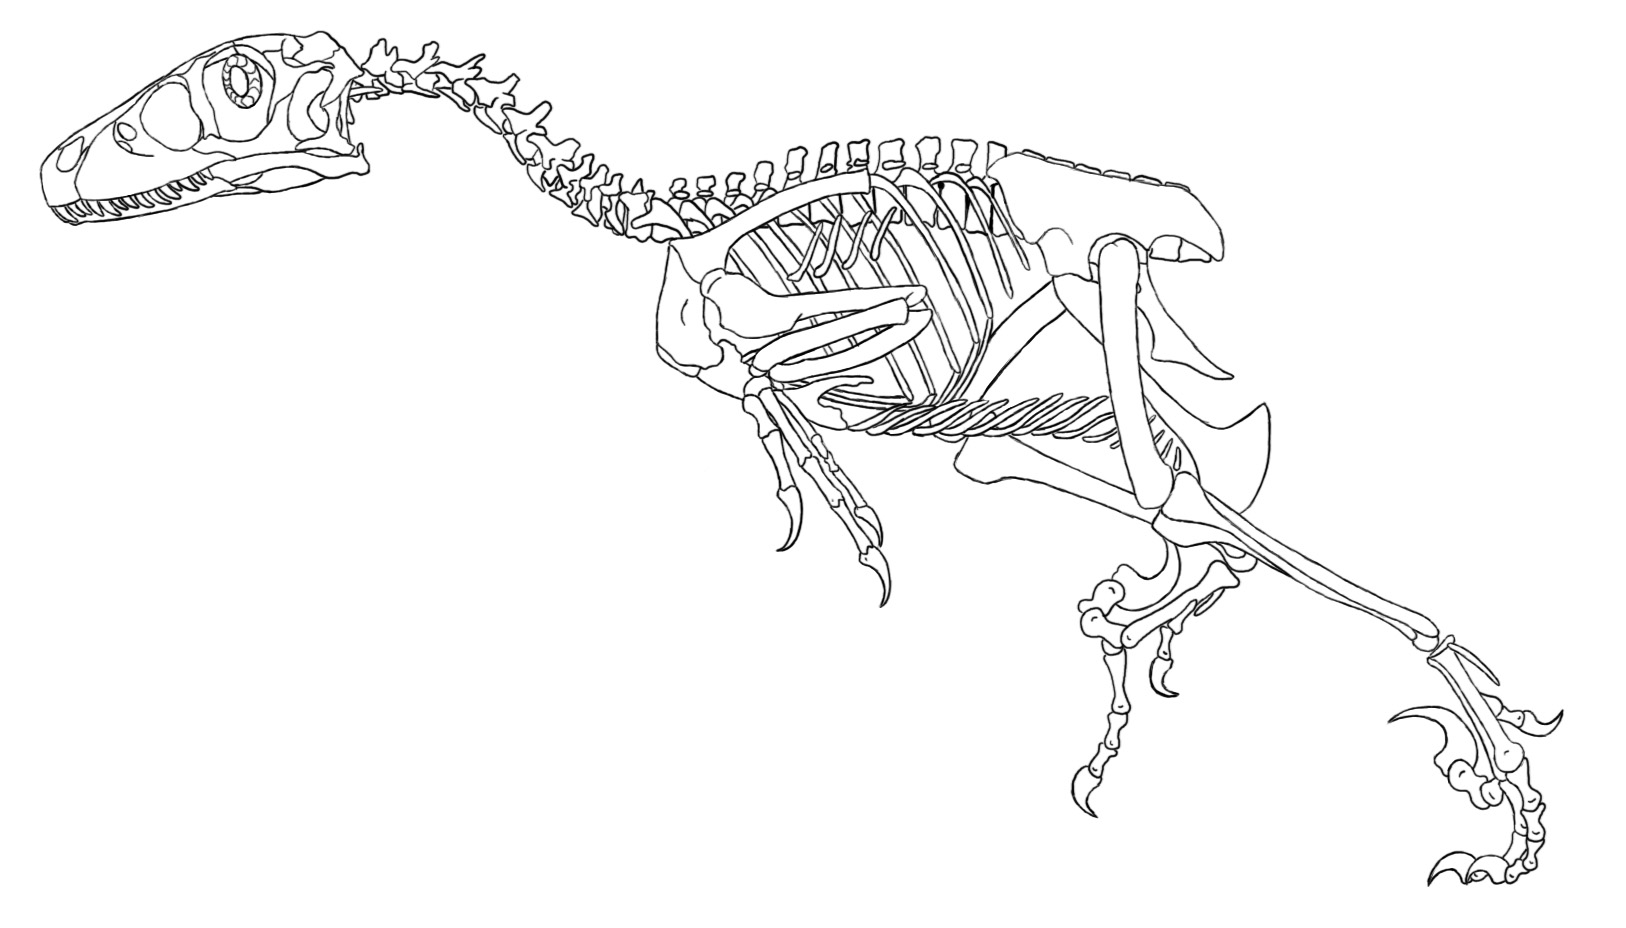 Deinonychus Skeleton coloring page